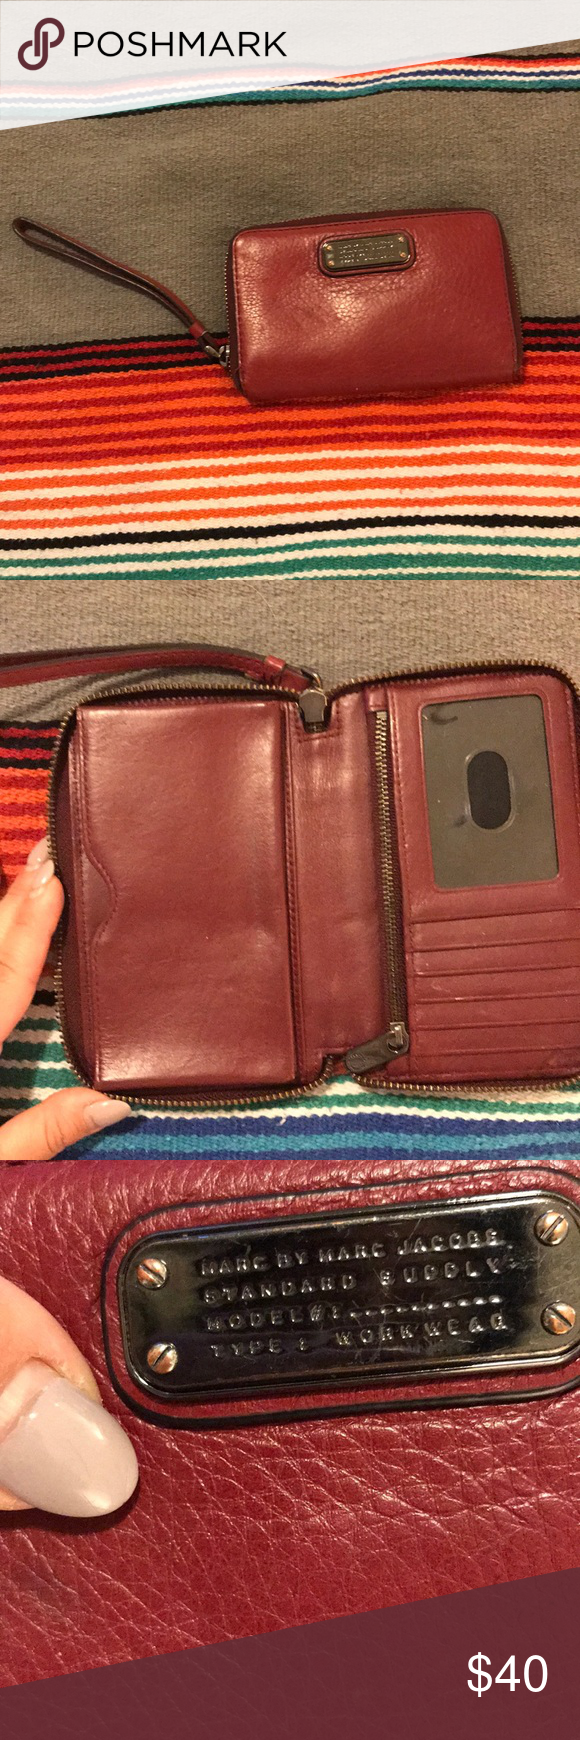 marc jacobs coin wallet